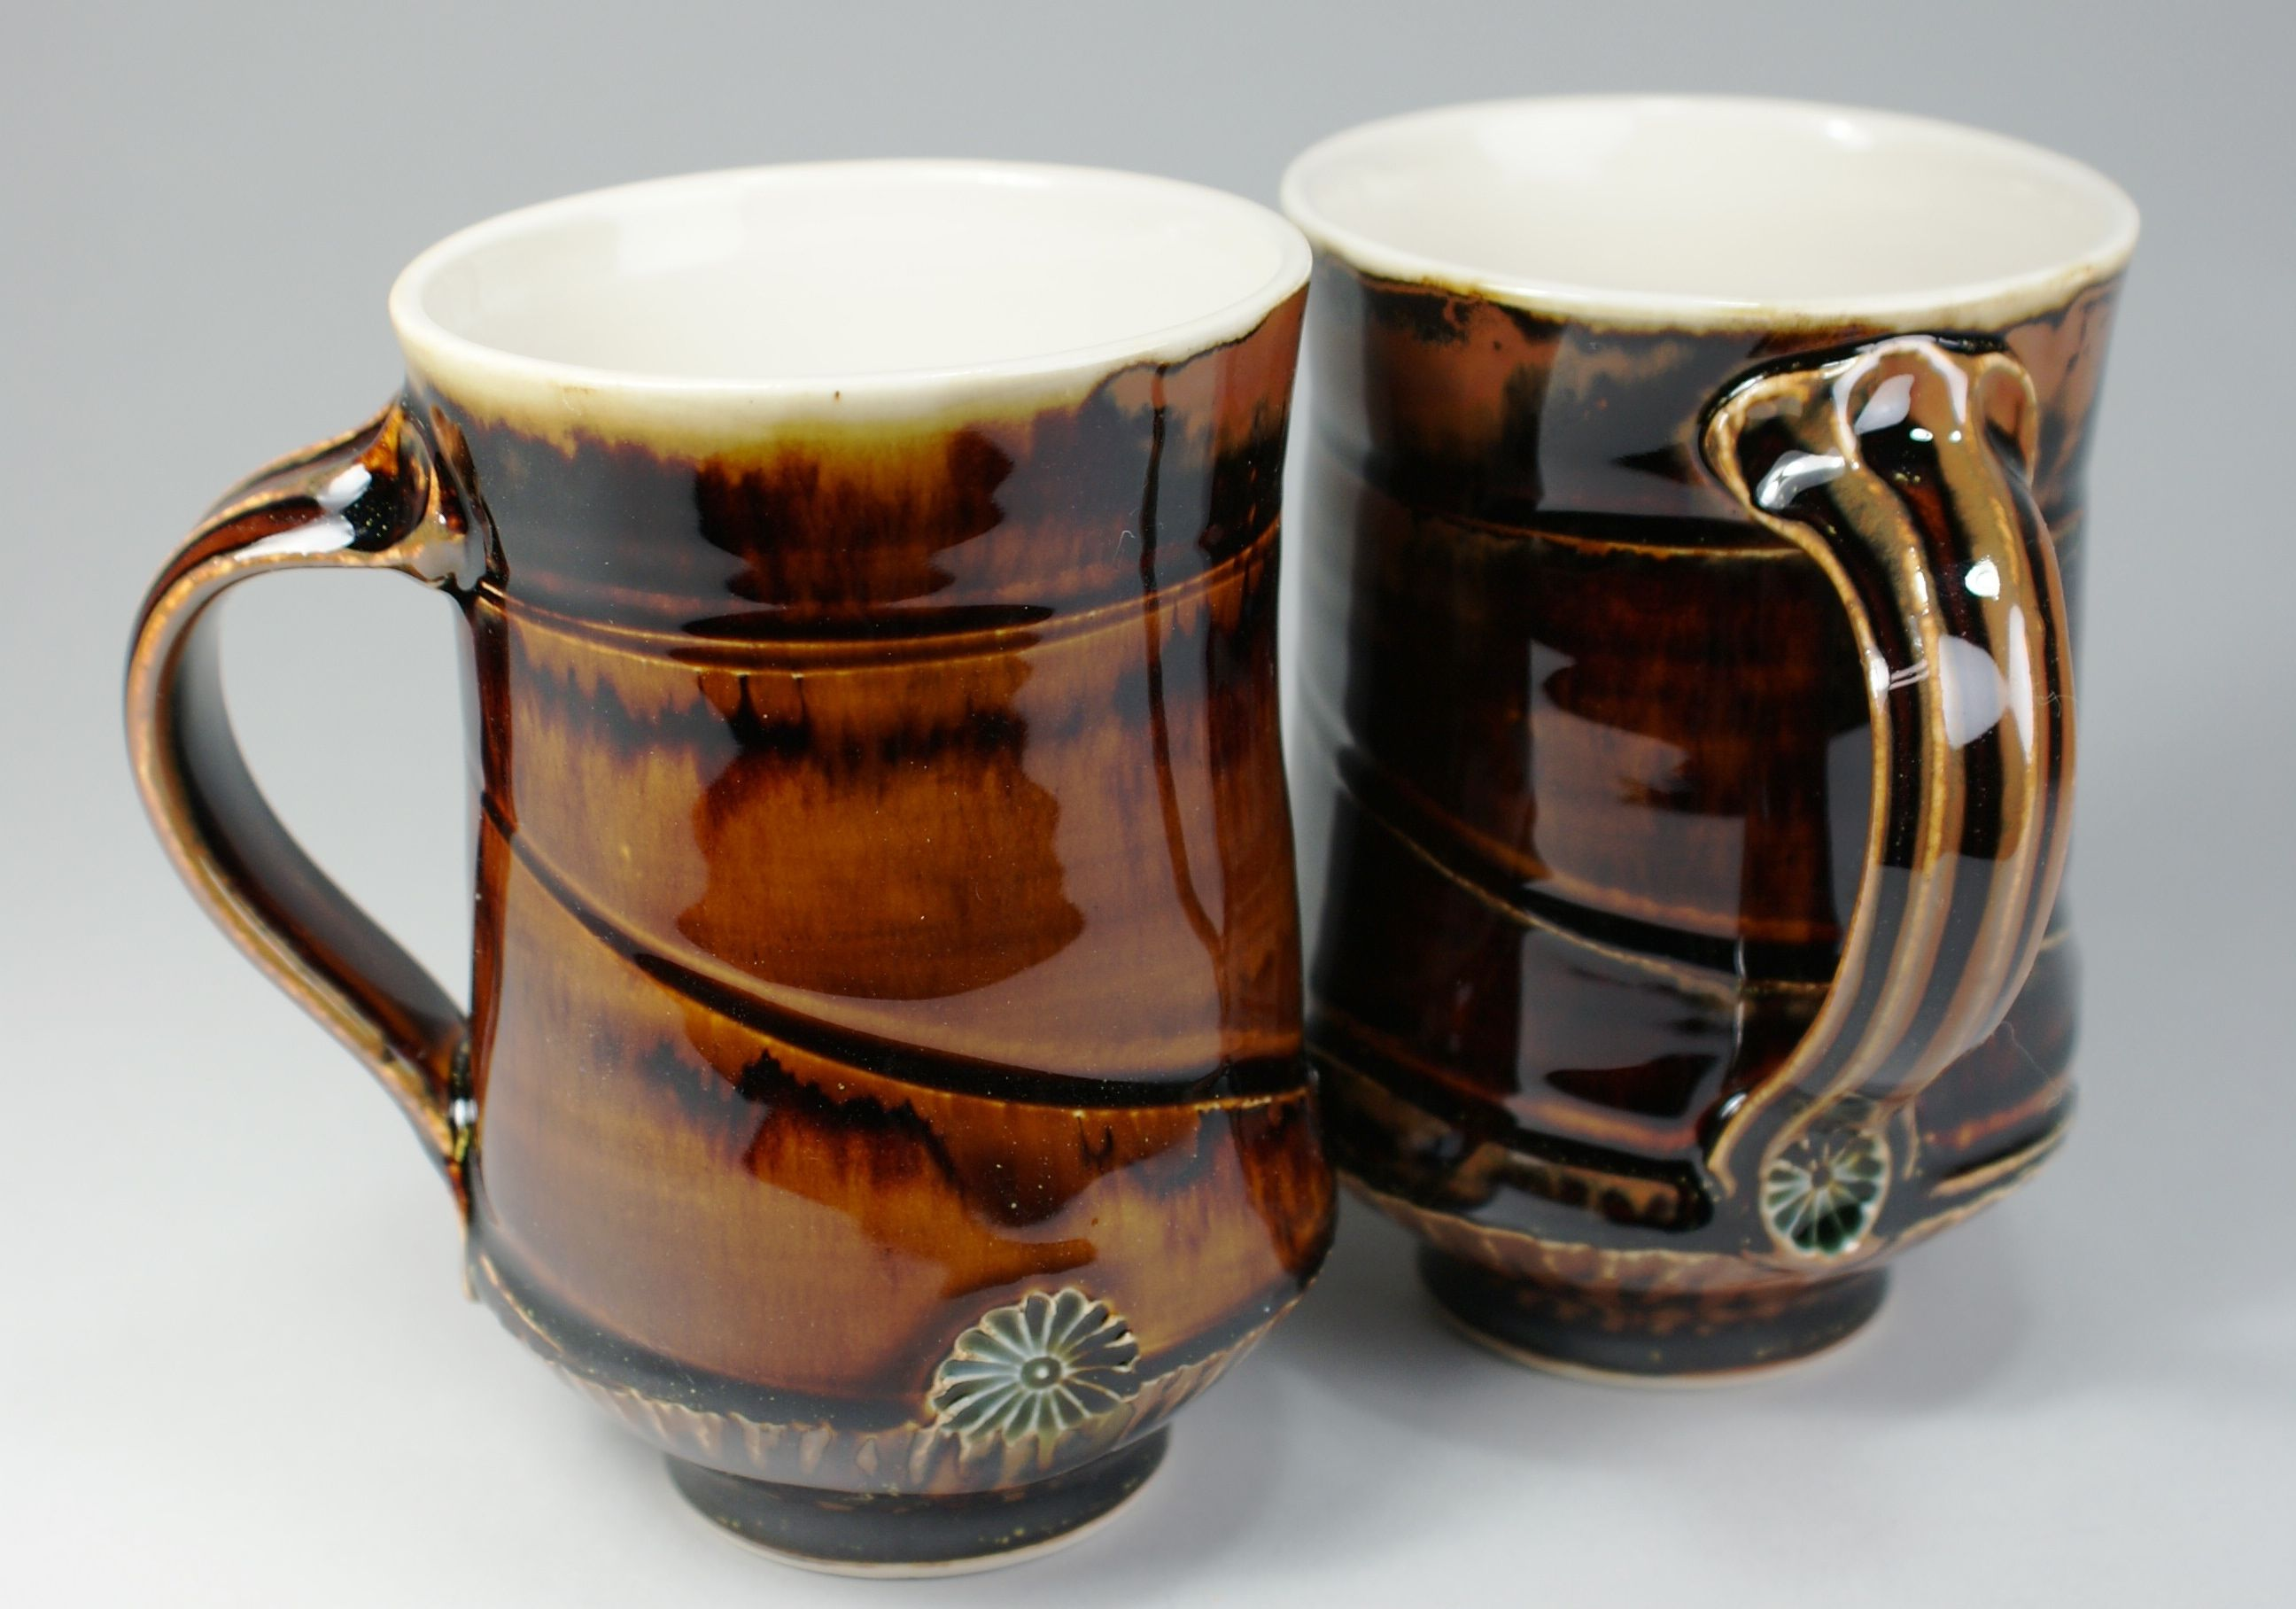 Cone 10 oxidation porcelain cups  Albany slip amber celadon